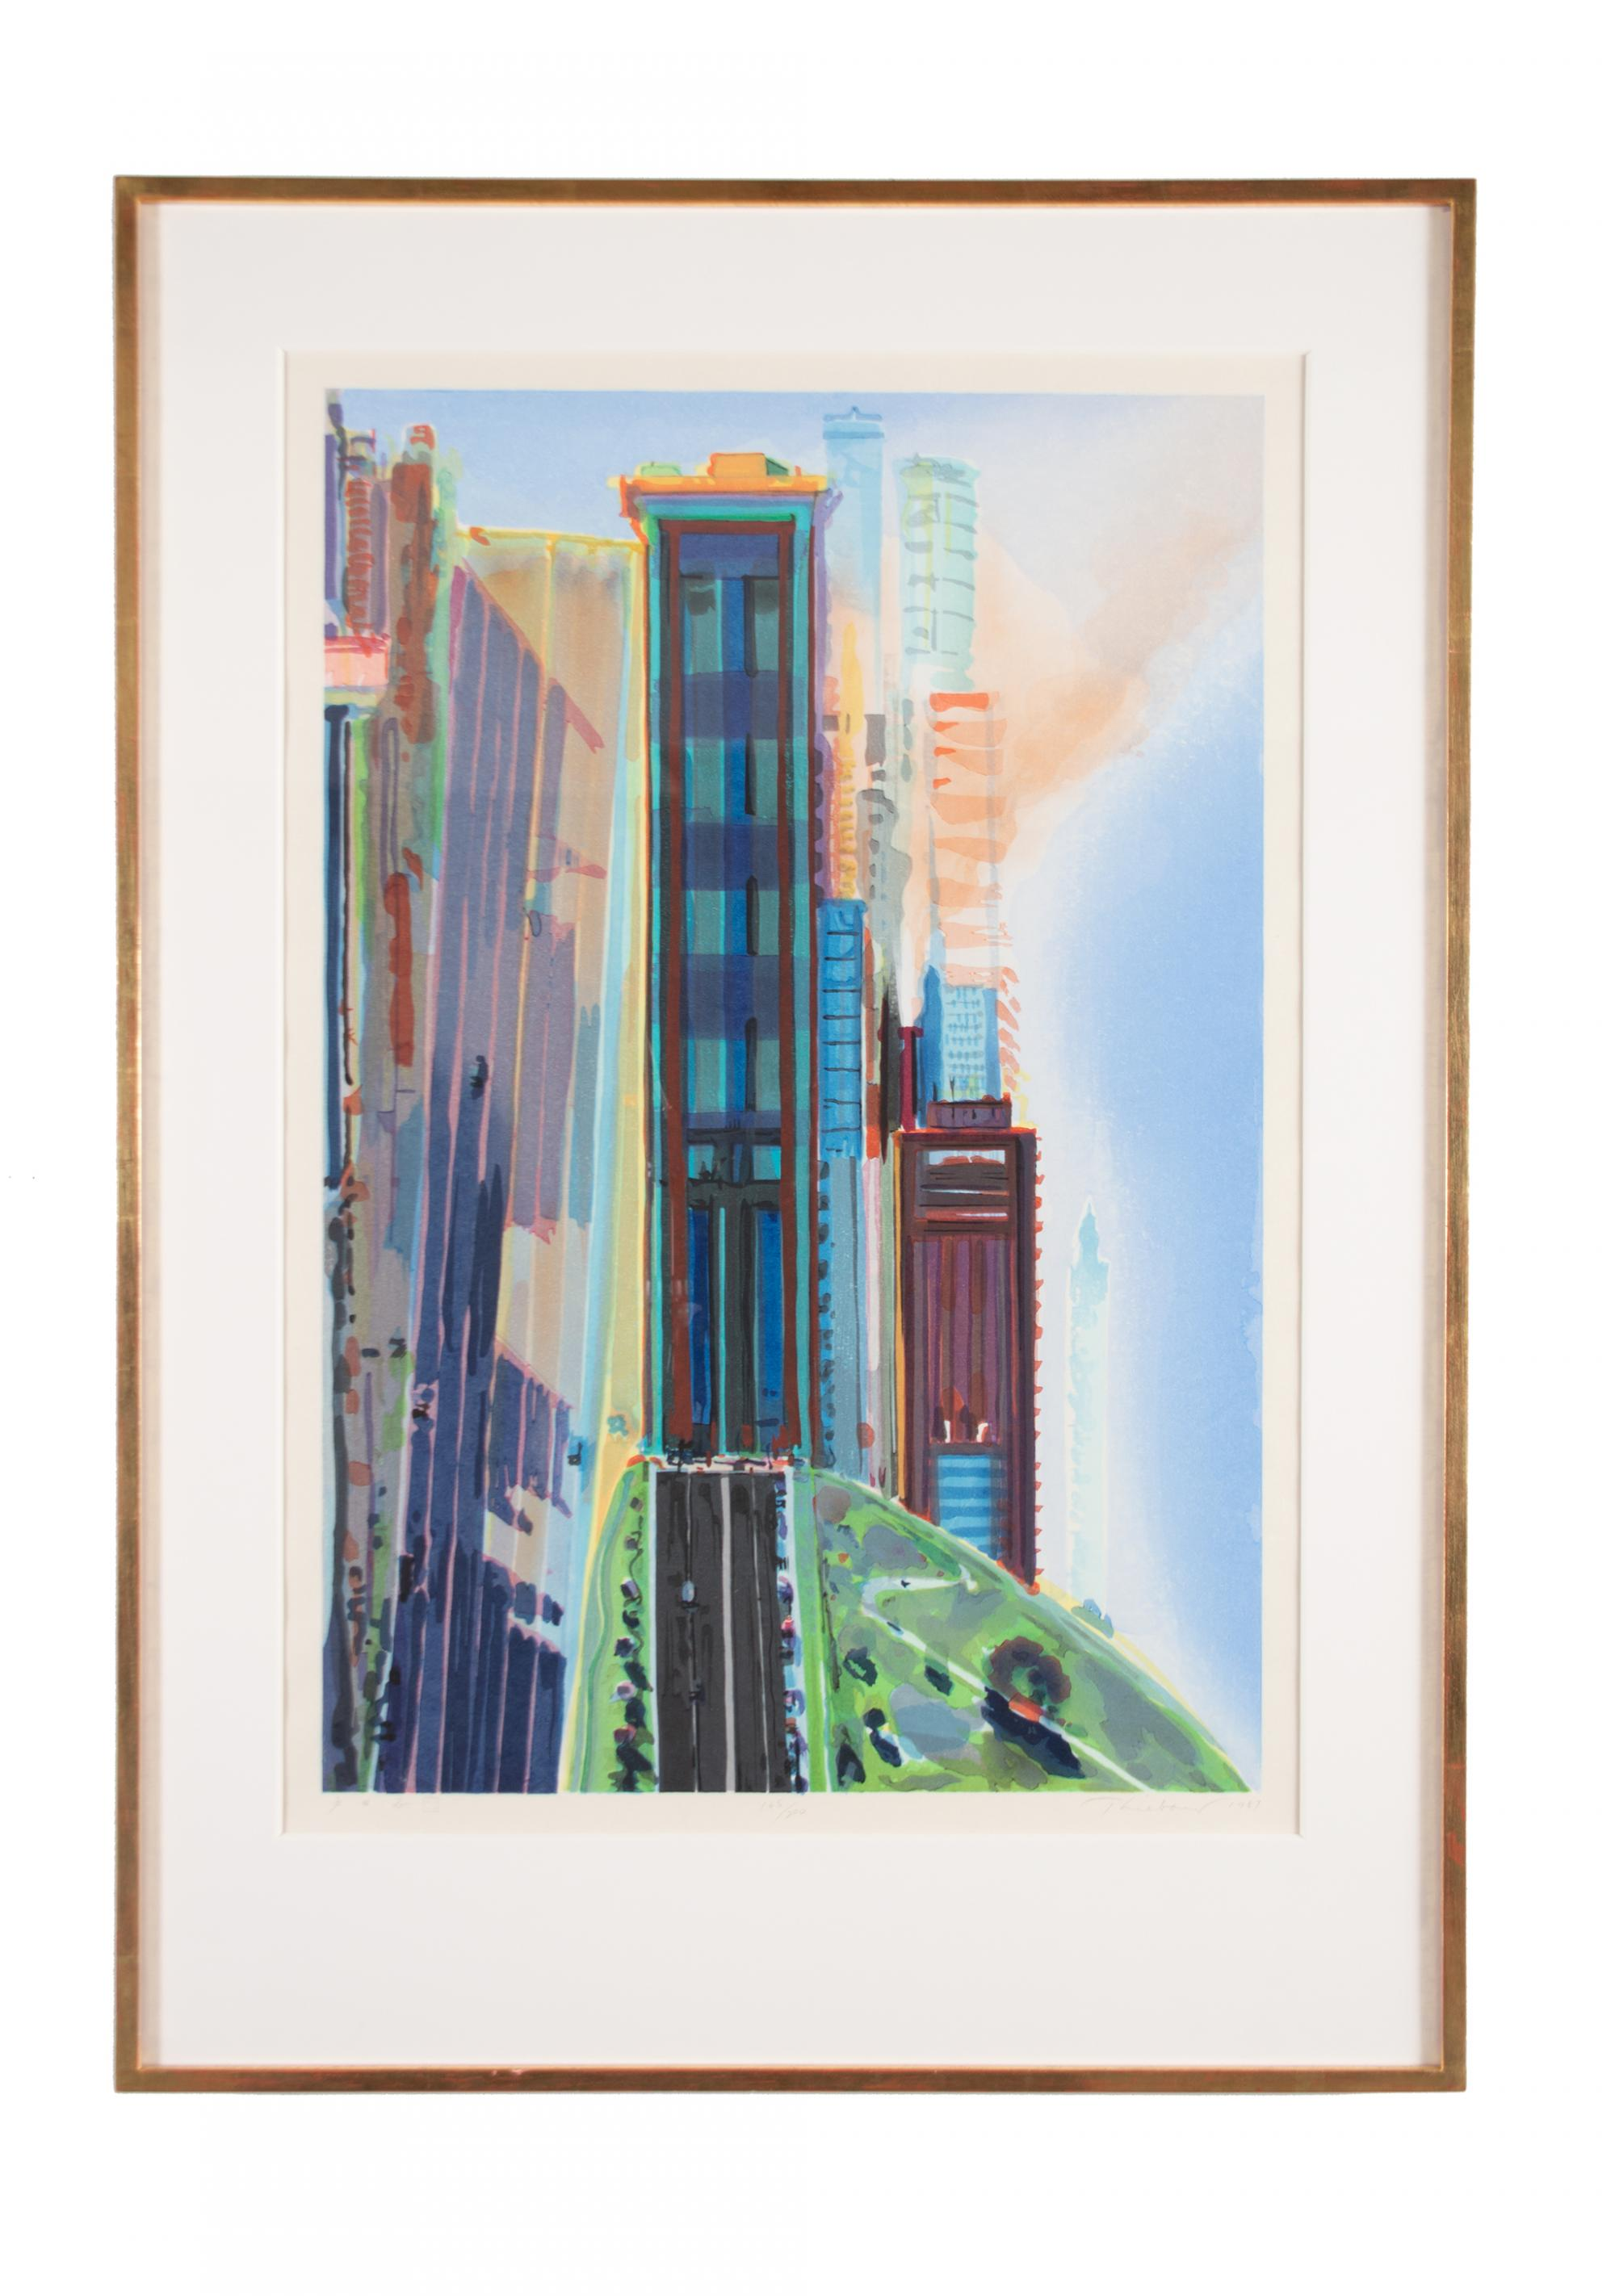 Wayne Thiebaud (b. 1920) United States, Hill Street, Color woodcut, 1987, Gift of Crown Point Press [90.7]